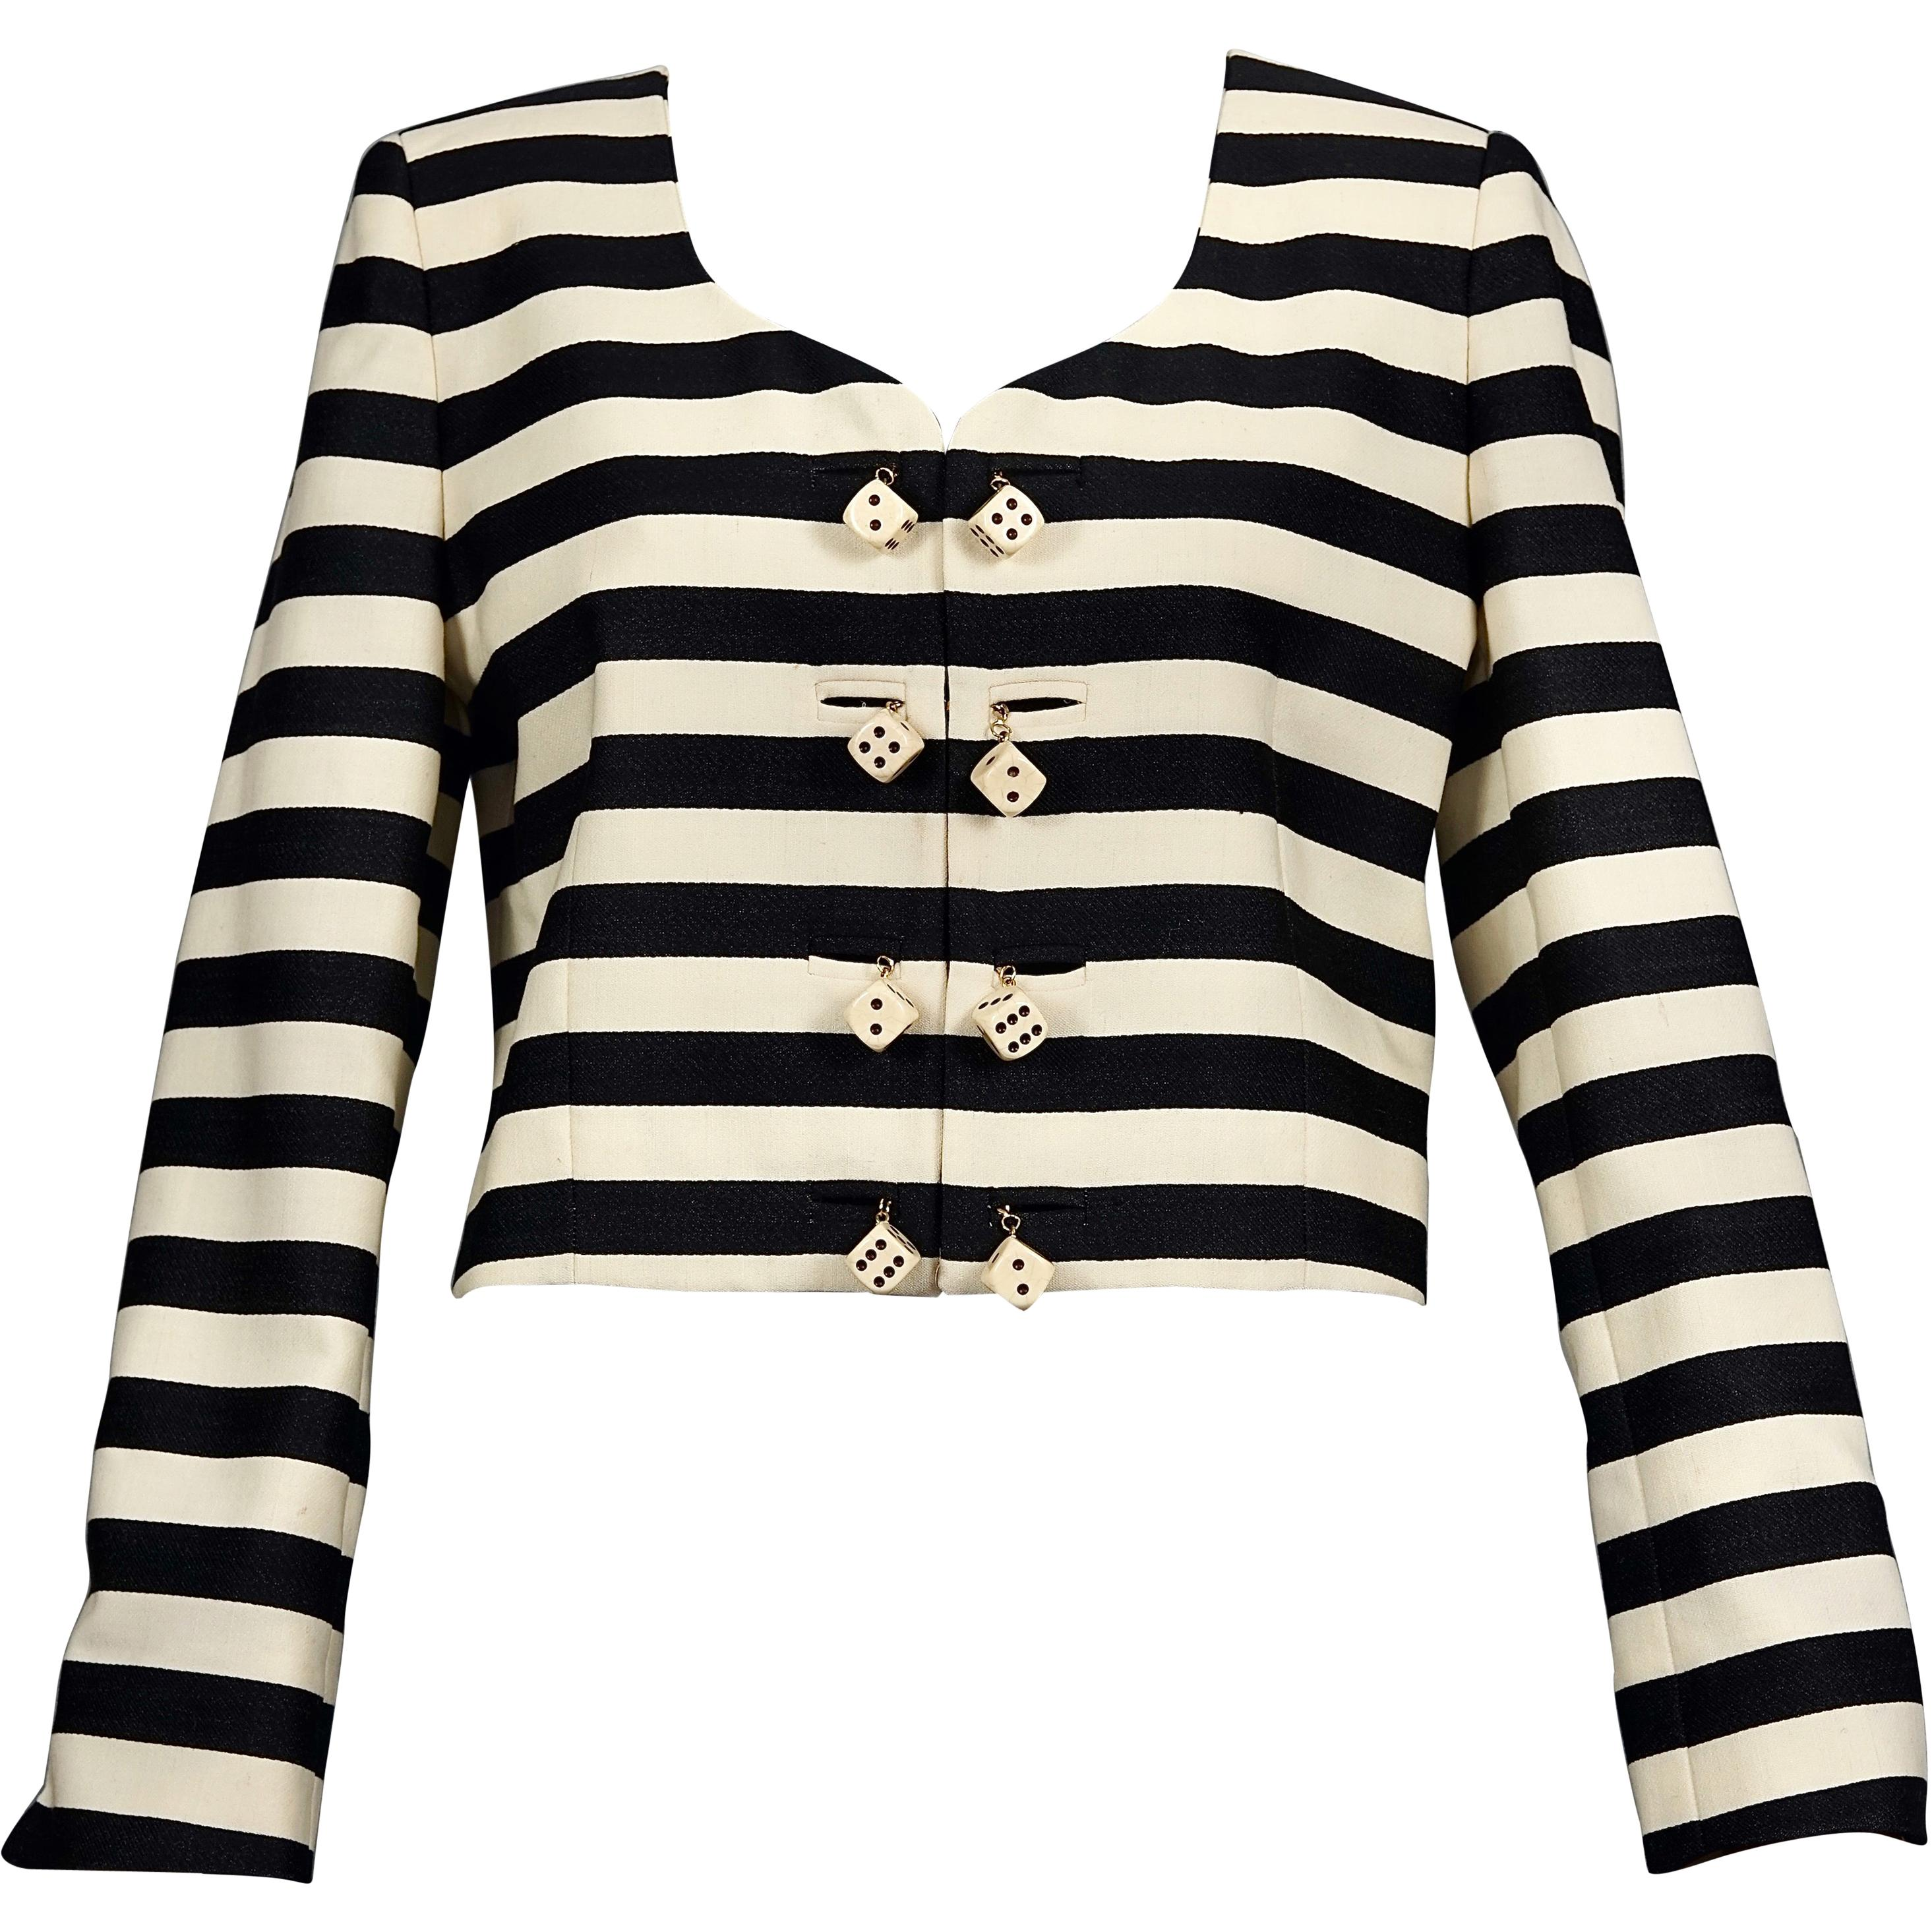 Vintage 1991 MOSCHINO Couture Dice Stripe Novelty Cropped Jacket